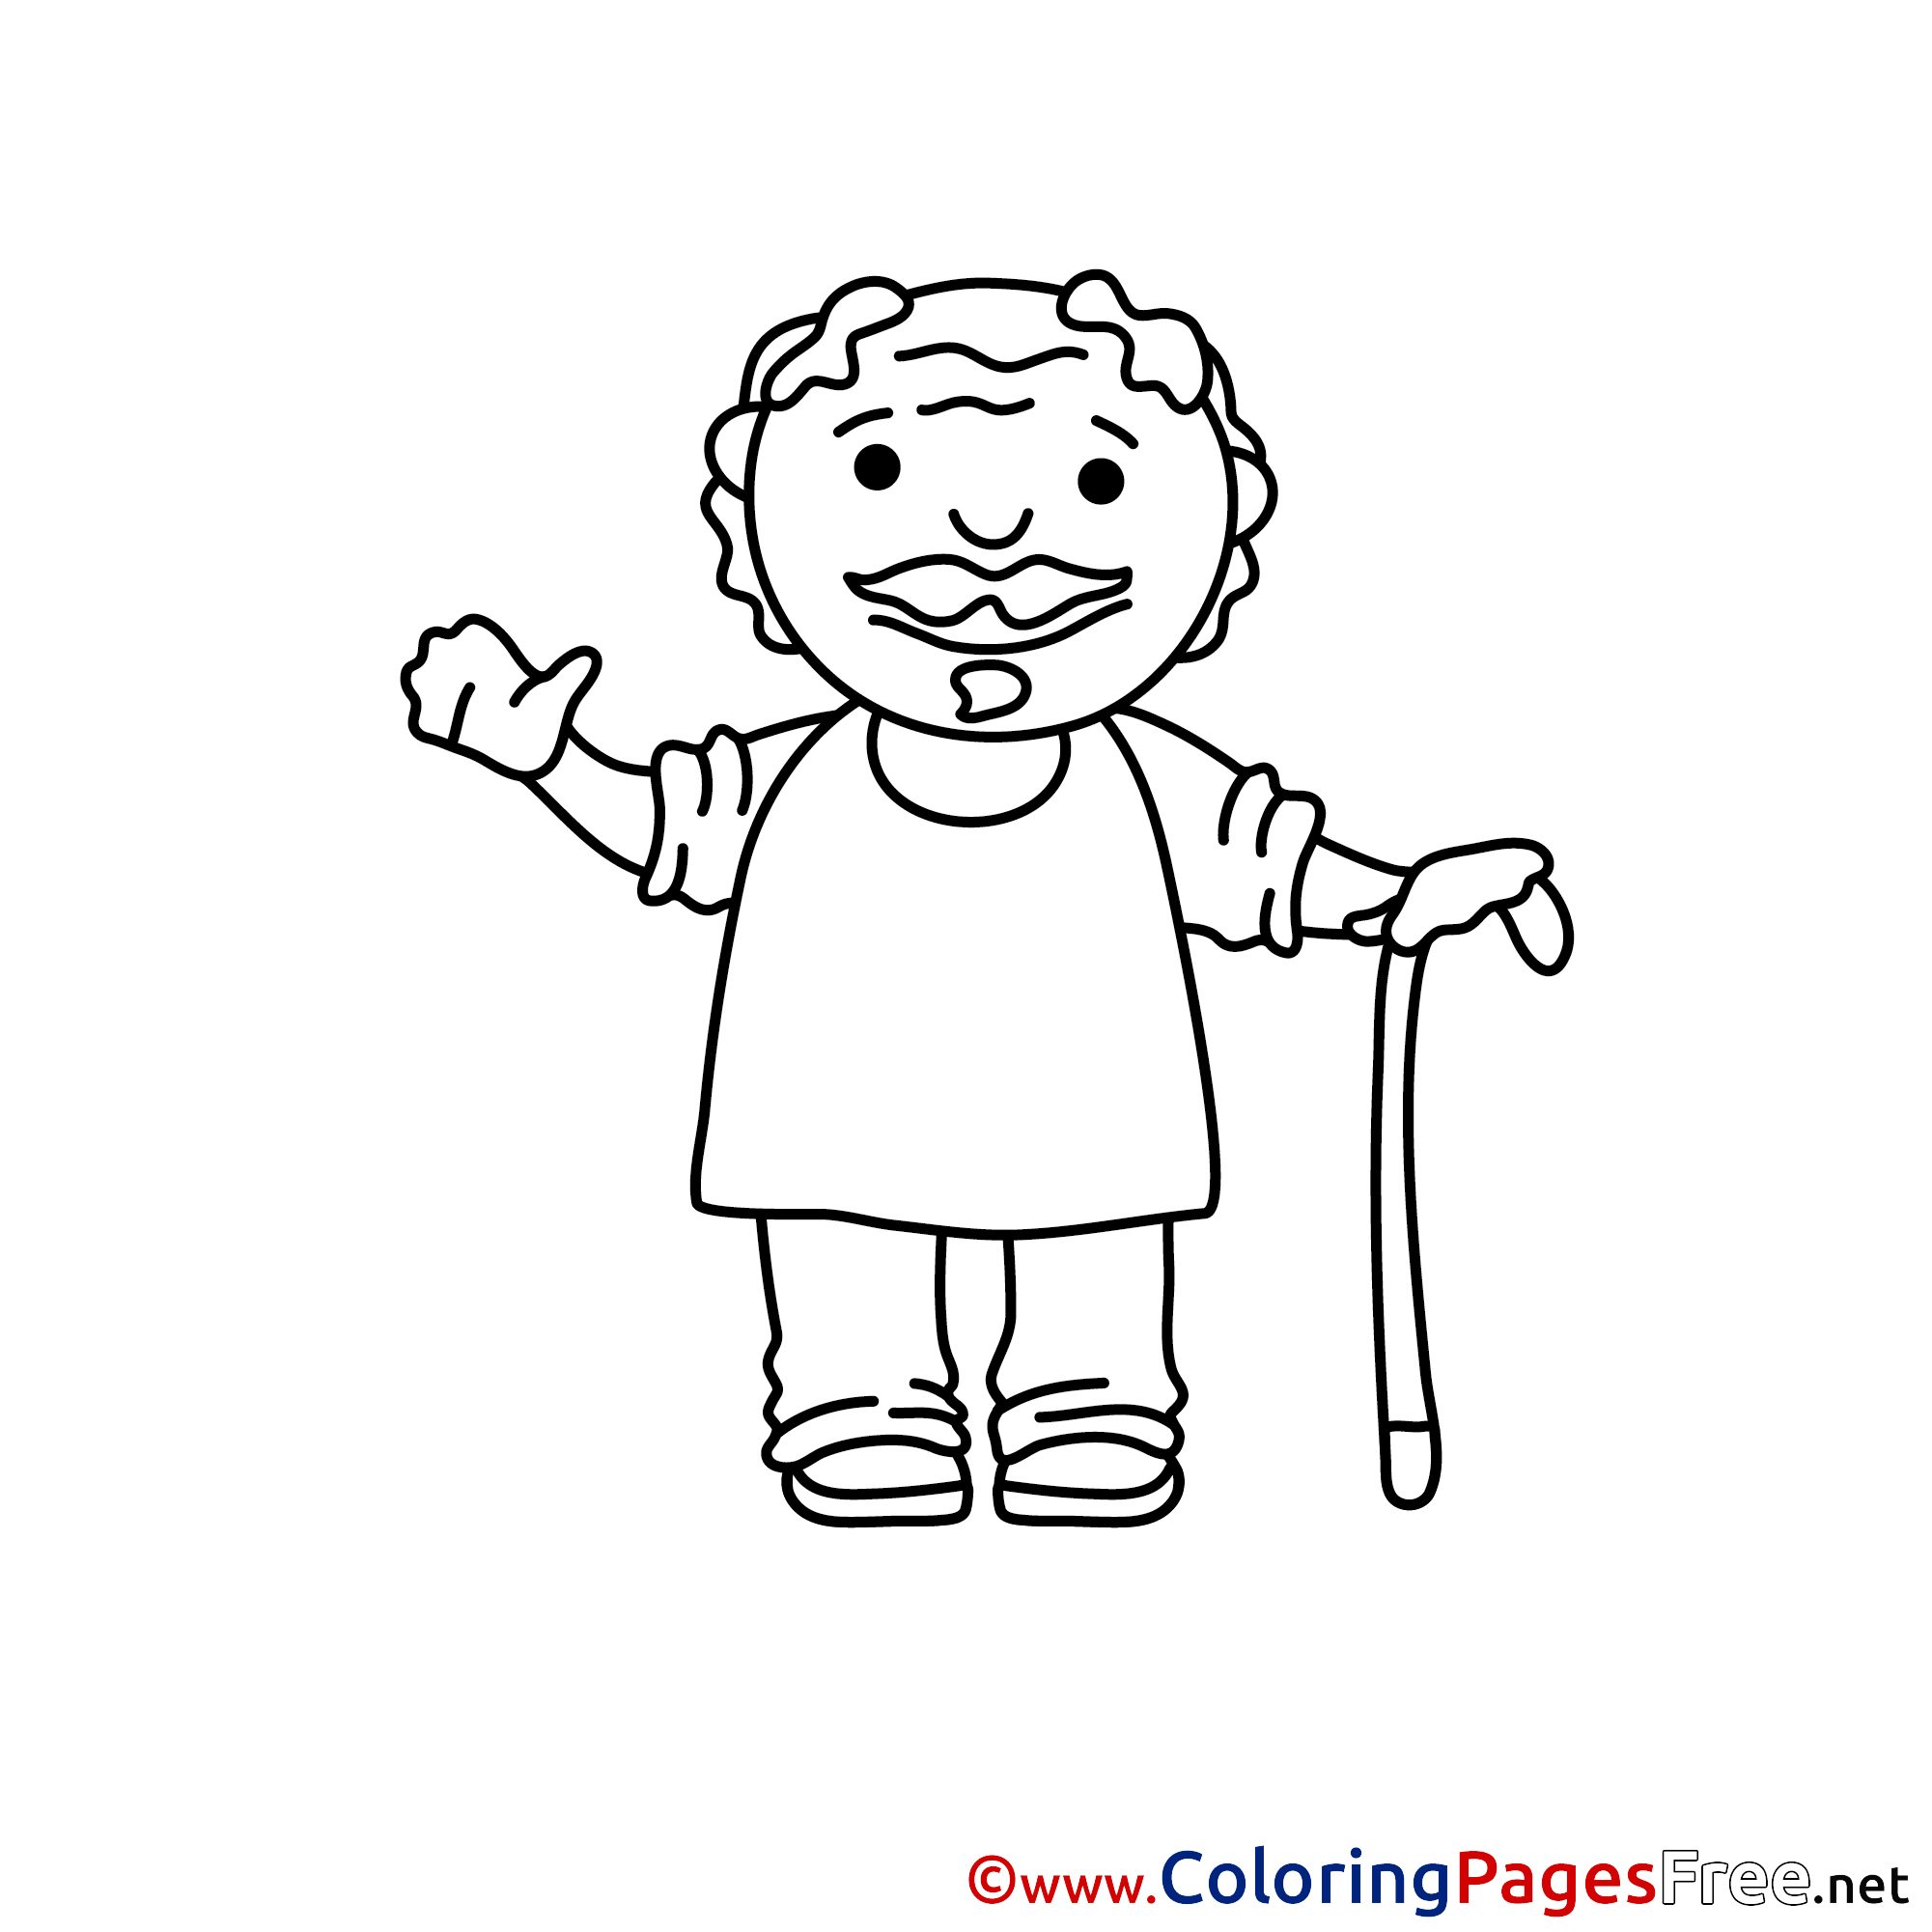 old man coloring pages old man coloring page at getcoloringscom free printable coloring man old pages